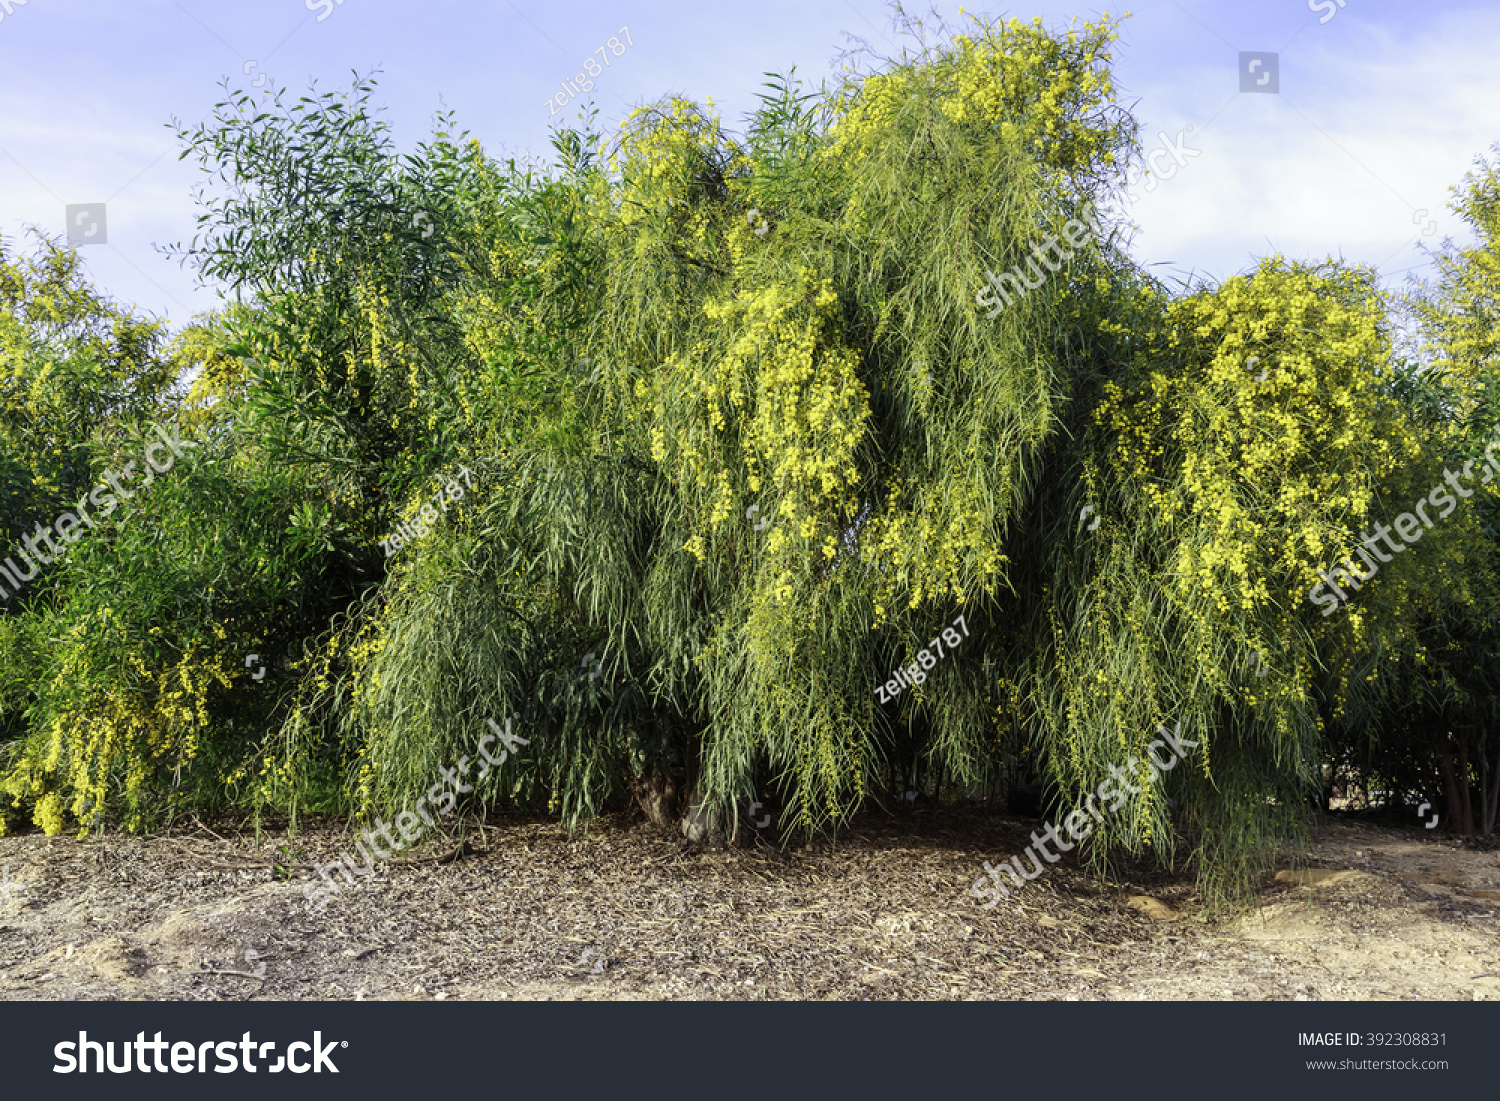 Acacia A Green Tree With Yellow Flowers Ez Canvas